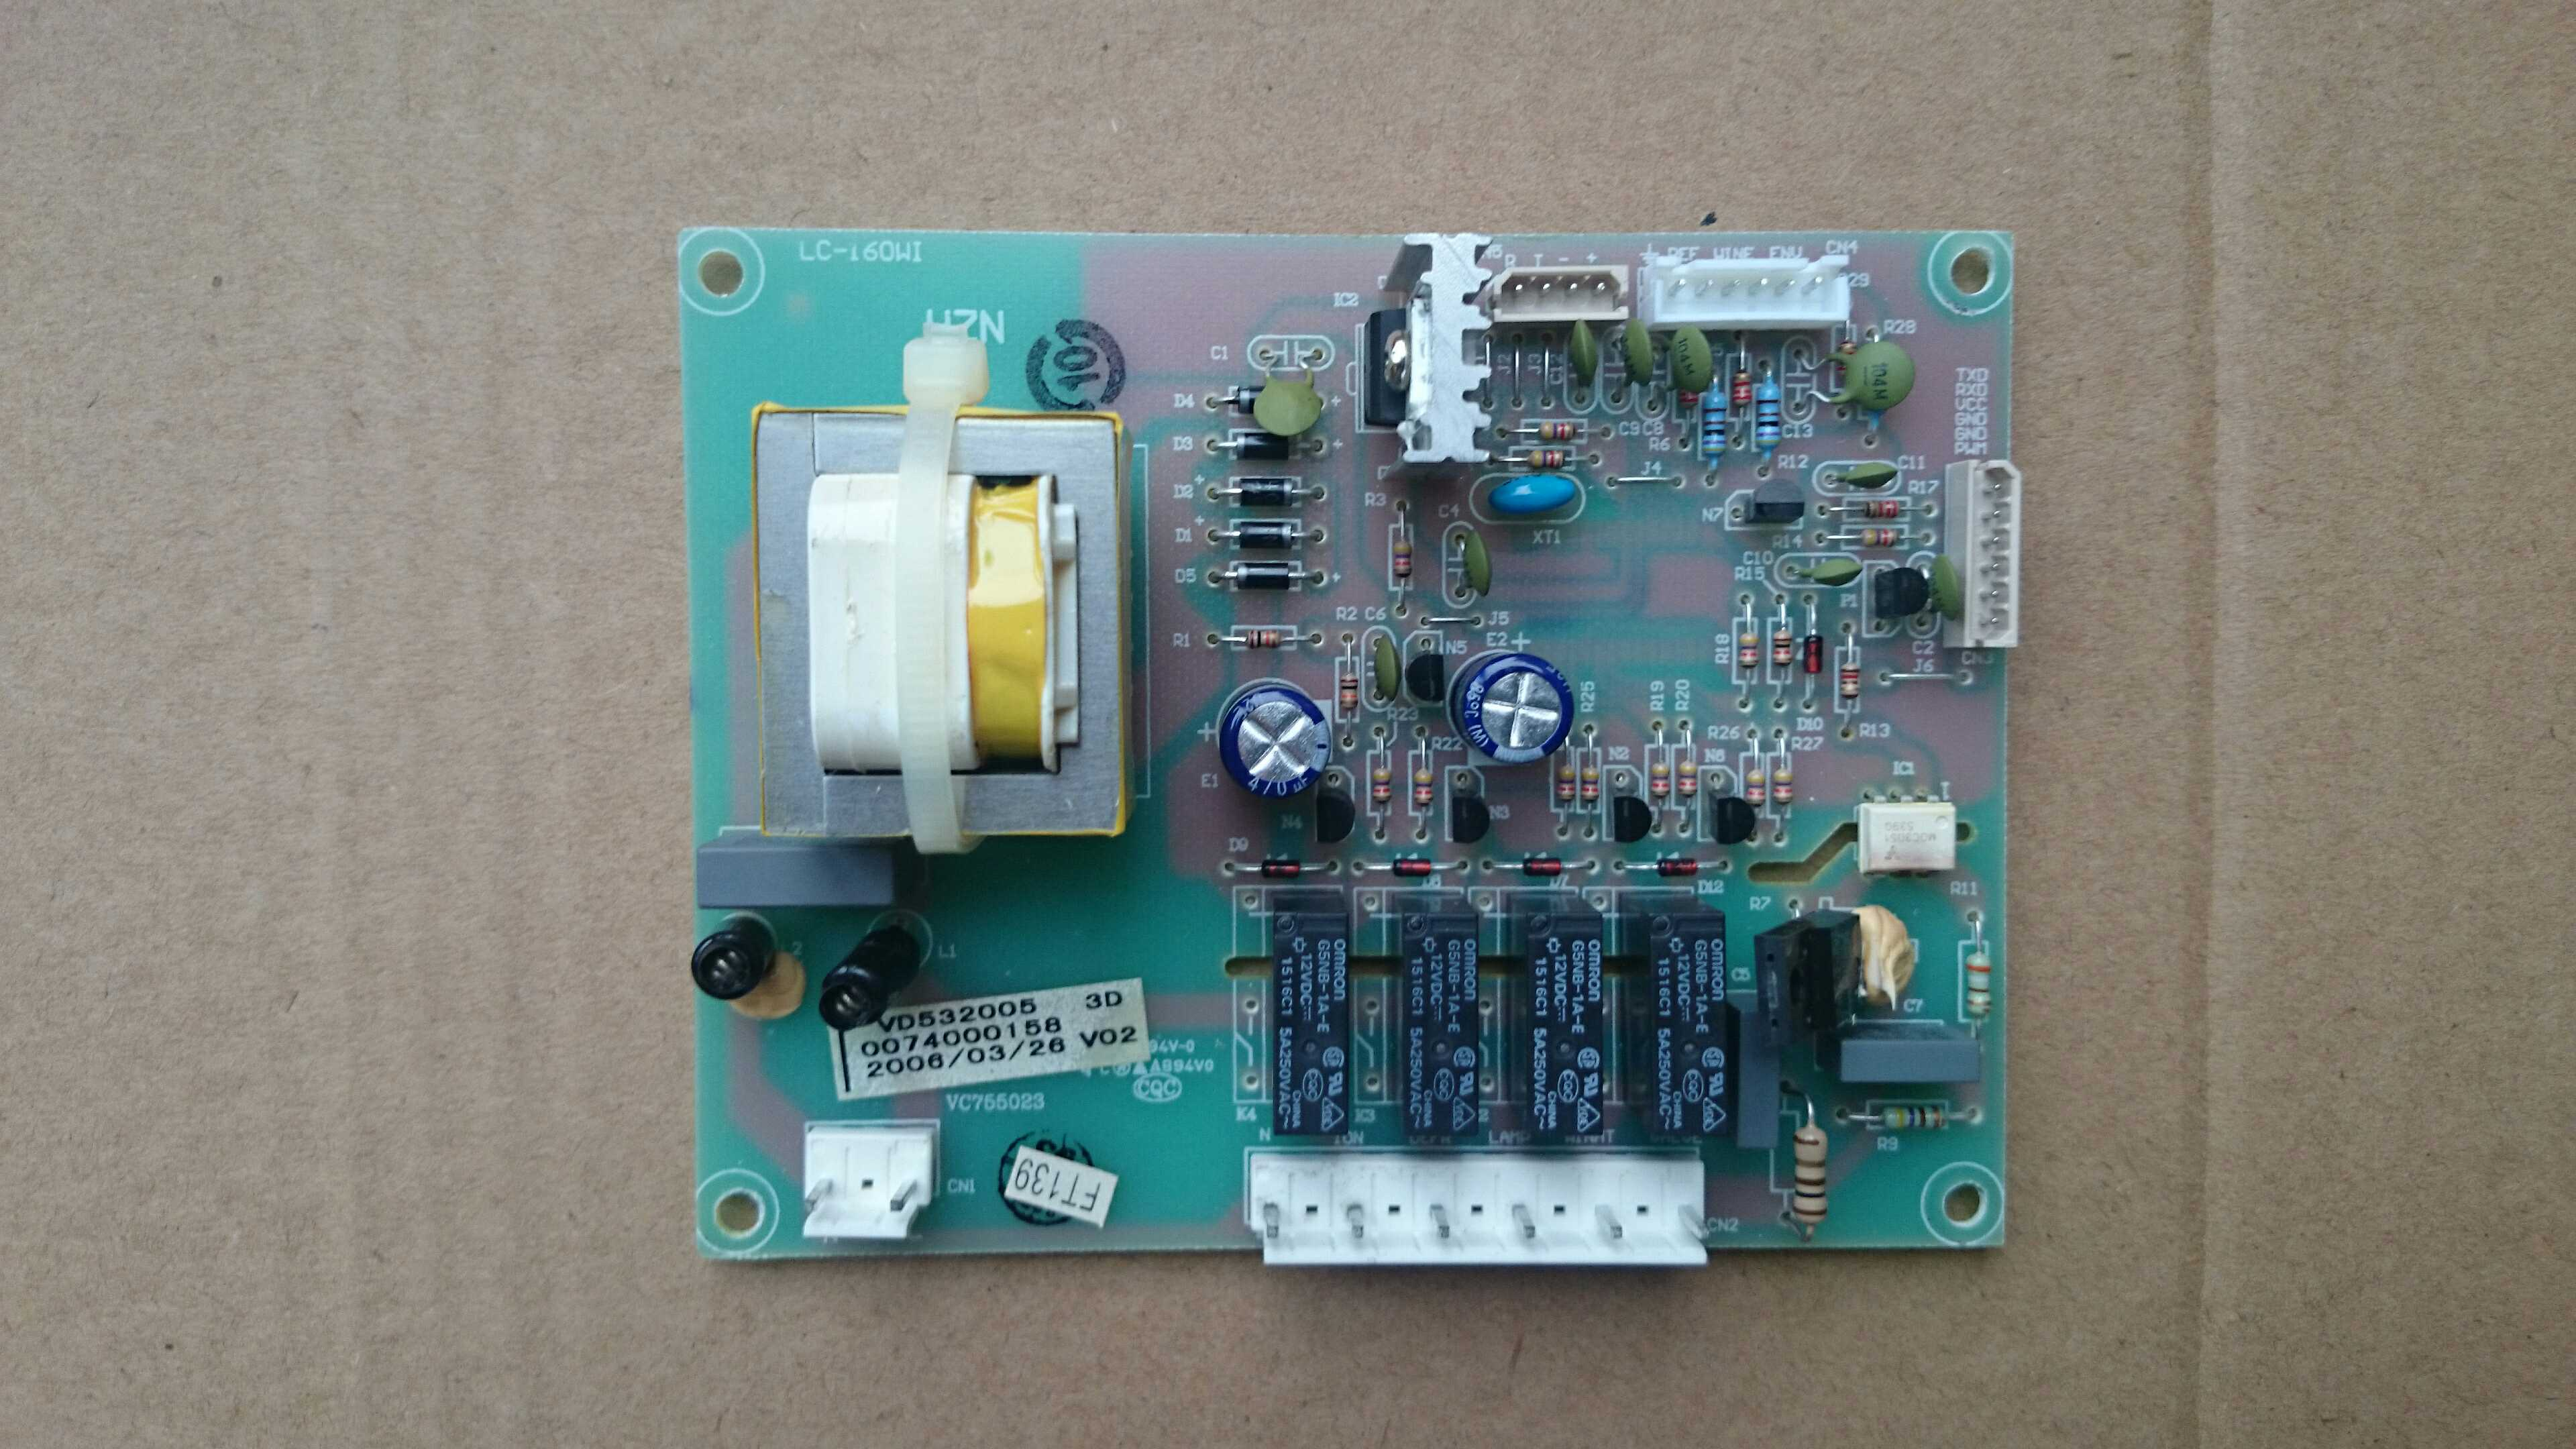 Haier LC130WBP inverter power supply board 0074000158 for storage. Jiubing wine LC160WBP телевизор haier le50k5500tf